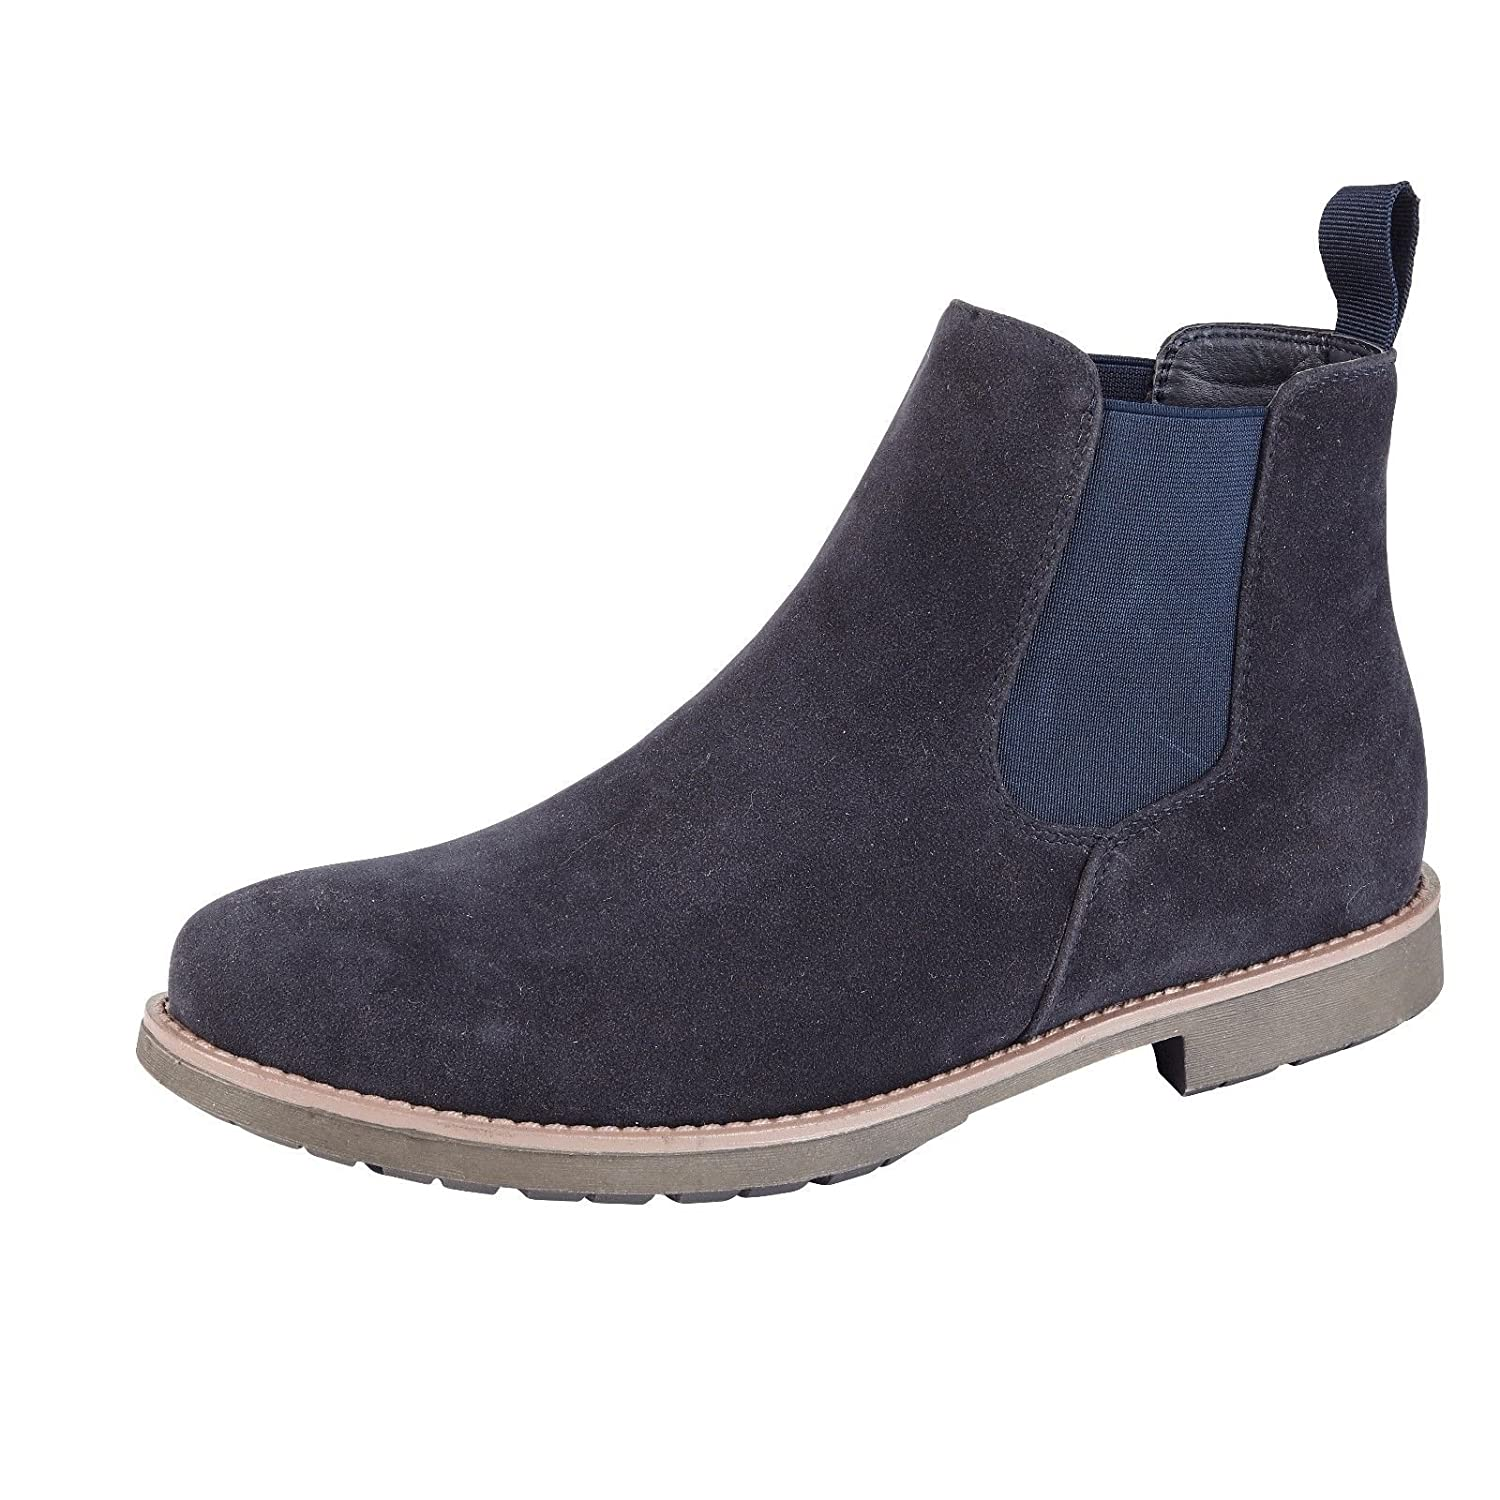 401d80beef3e5 Mens Chelsea Boots Dealer Ankle Smart Casual Slip ON Shoes Size UK 7 8 9 10  11 1